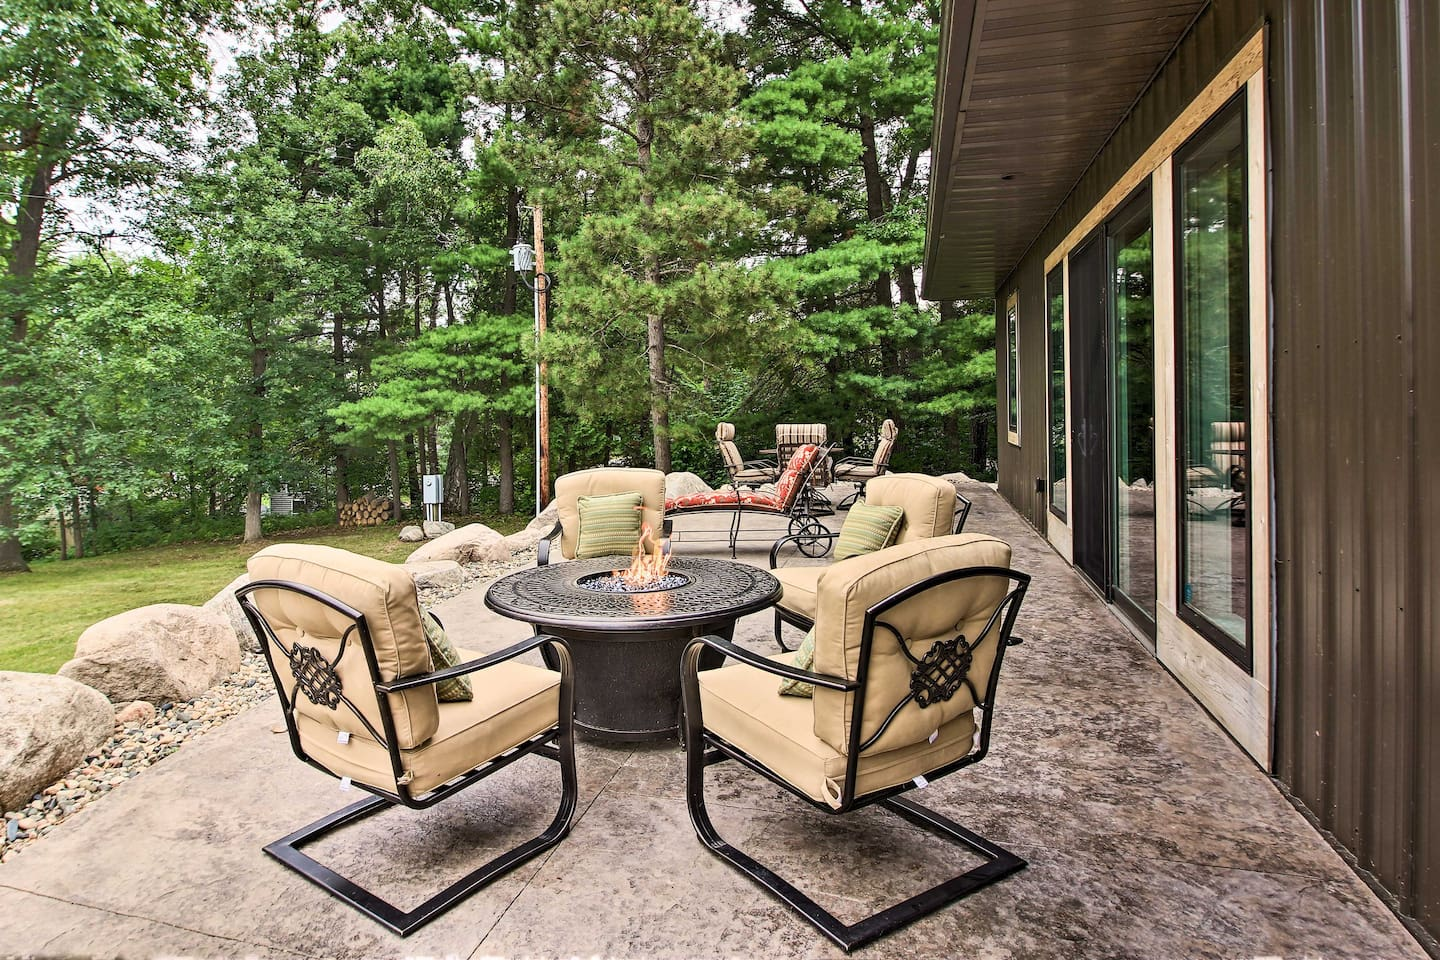 This vacation rental's patio features comfy furniture with a gas fire pit.